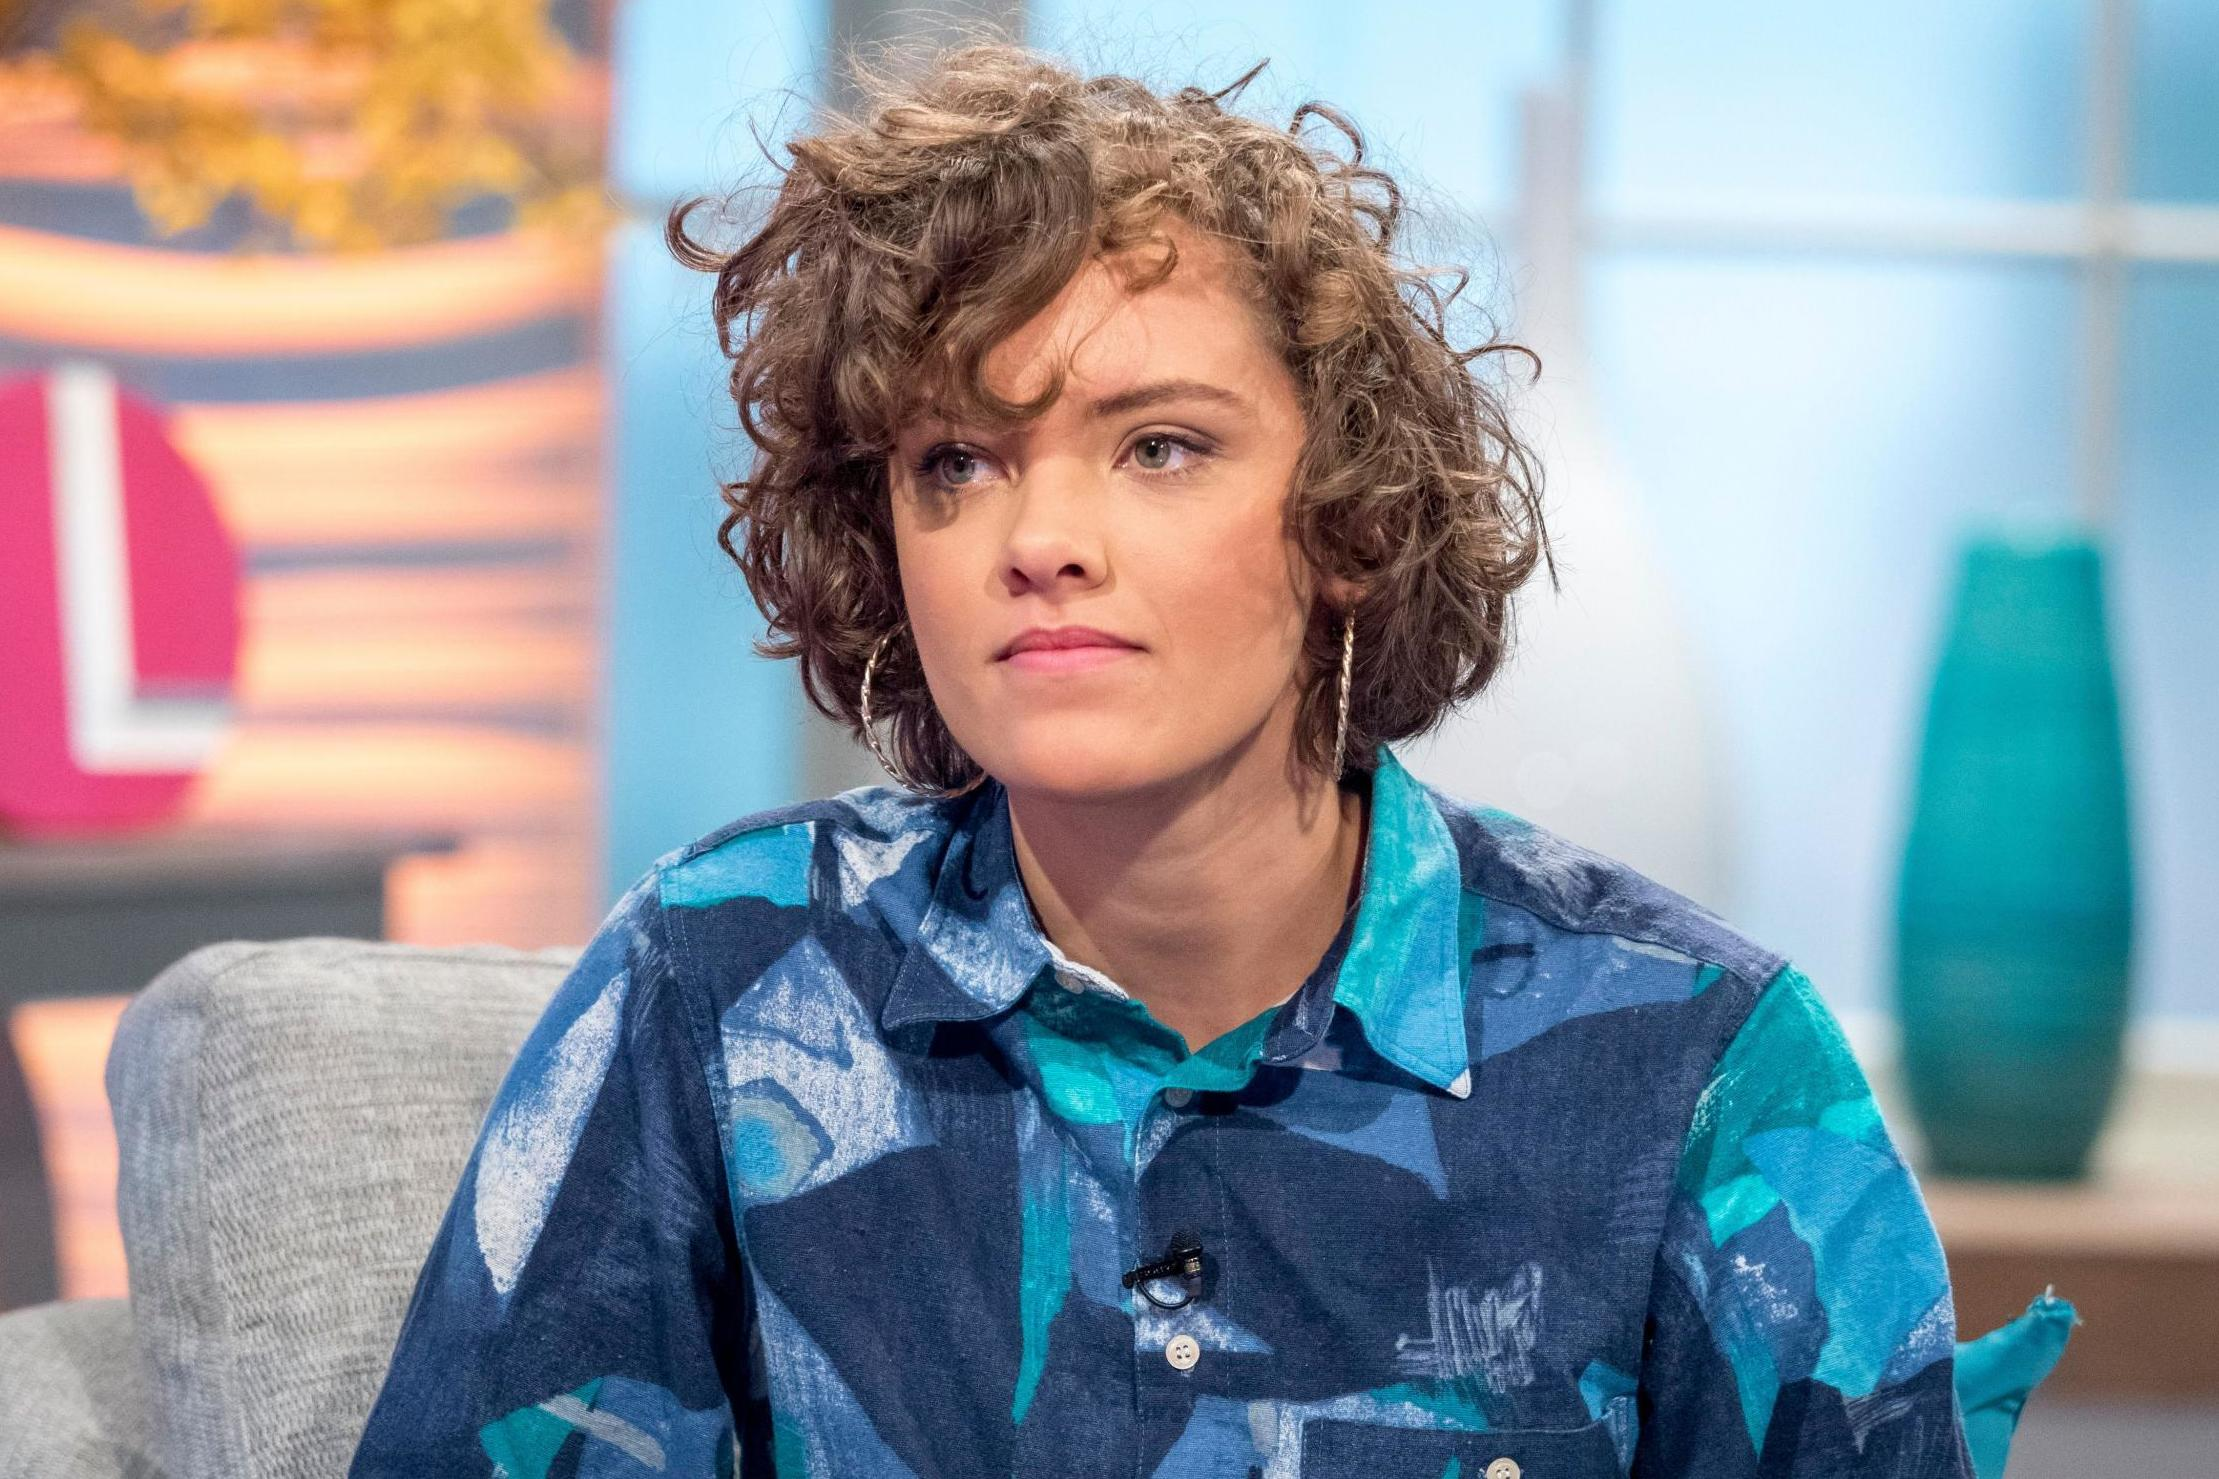 Ruby Tandoh's Real Thoughts On The Great British Bake Off And Paul Hollywood